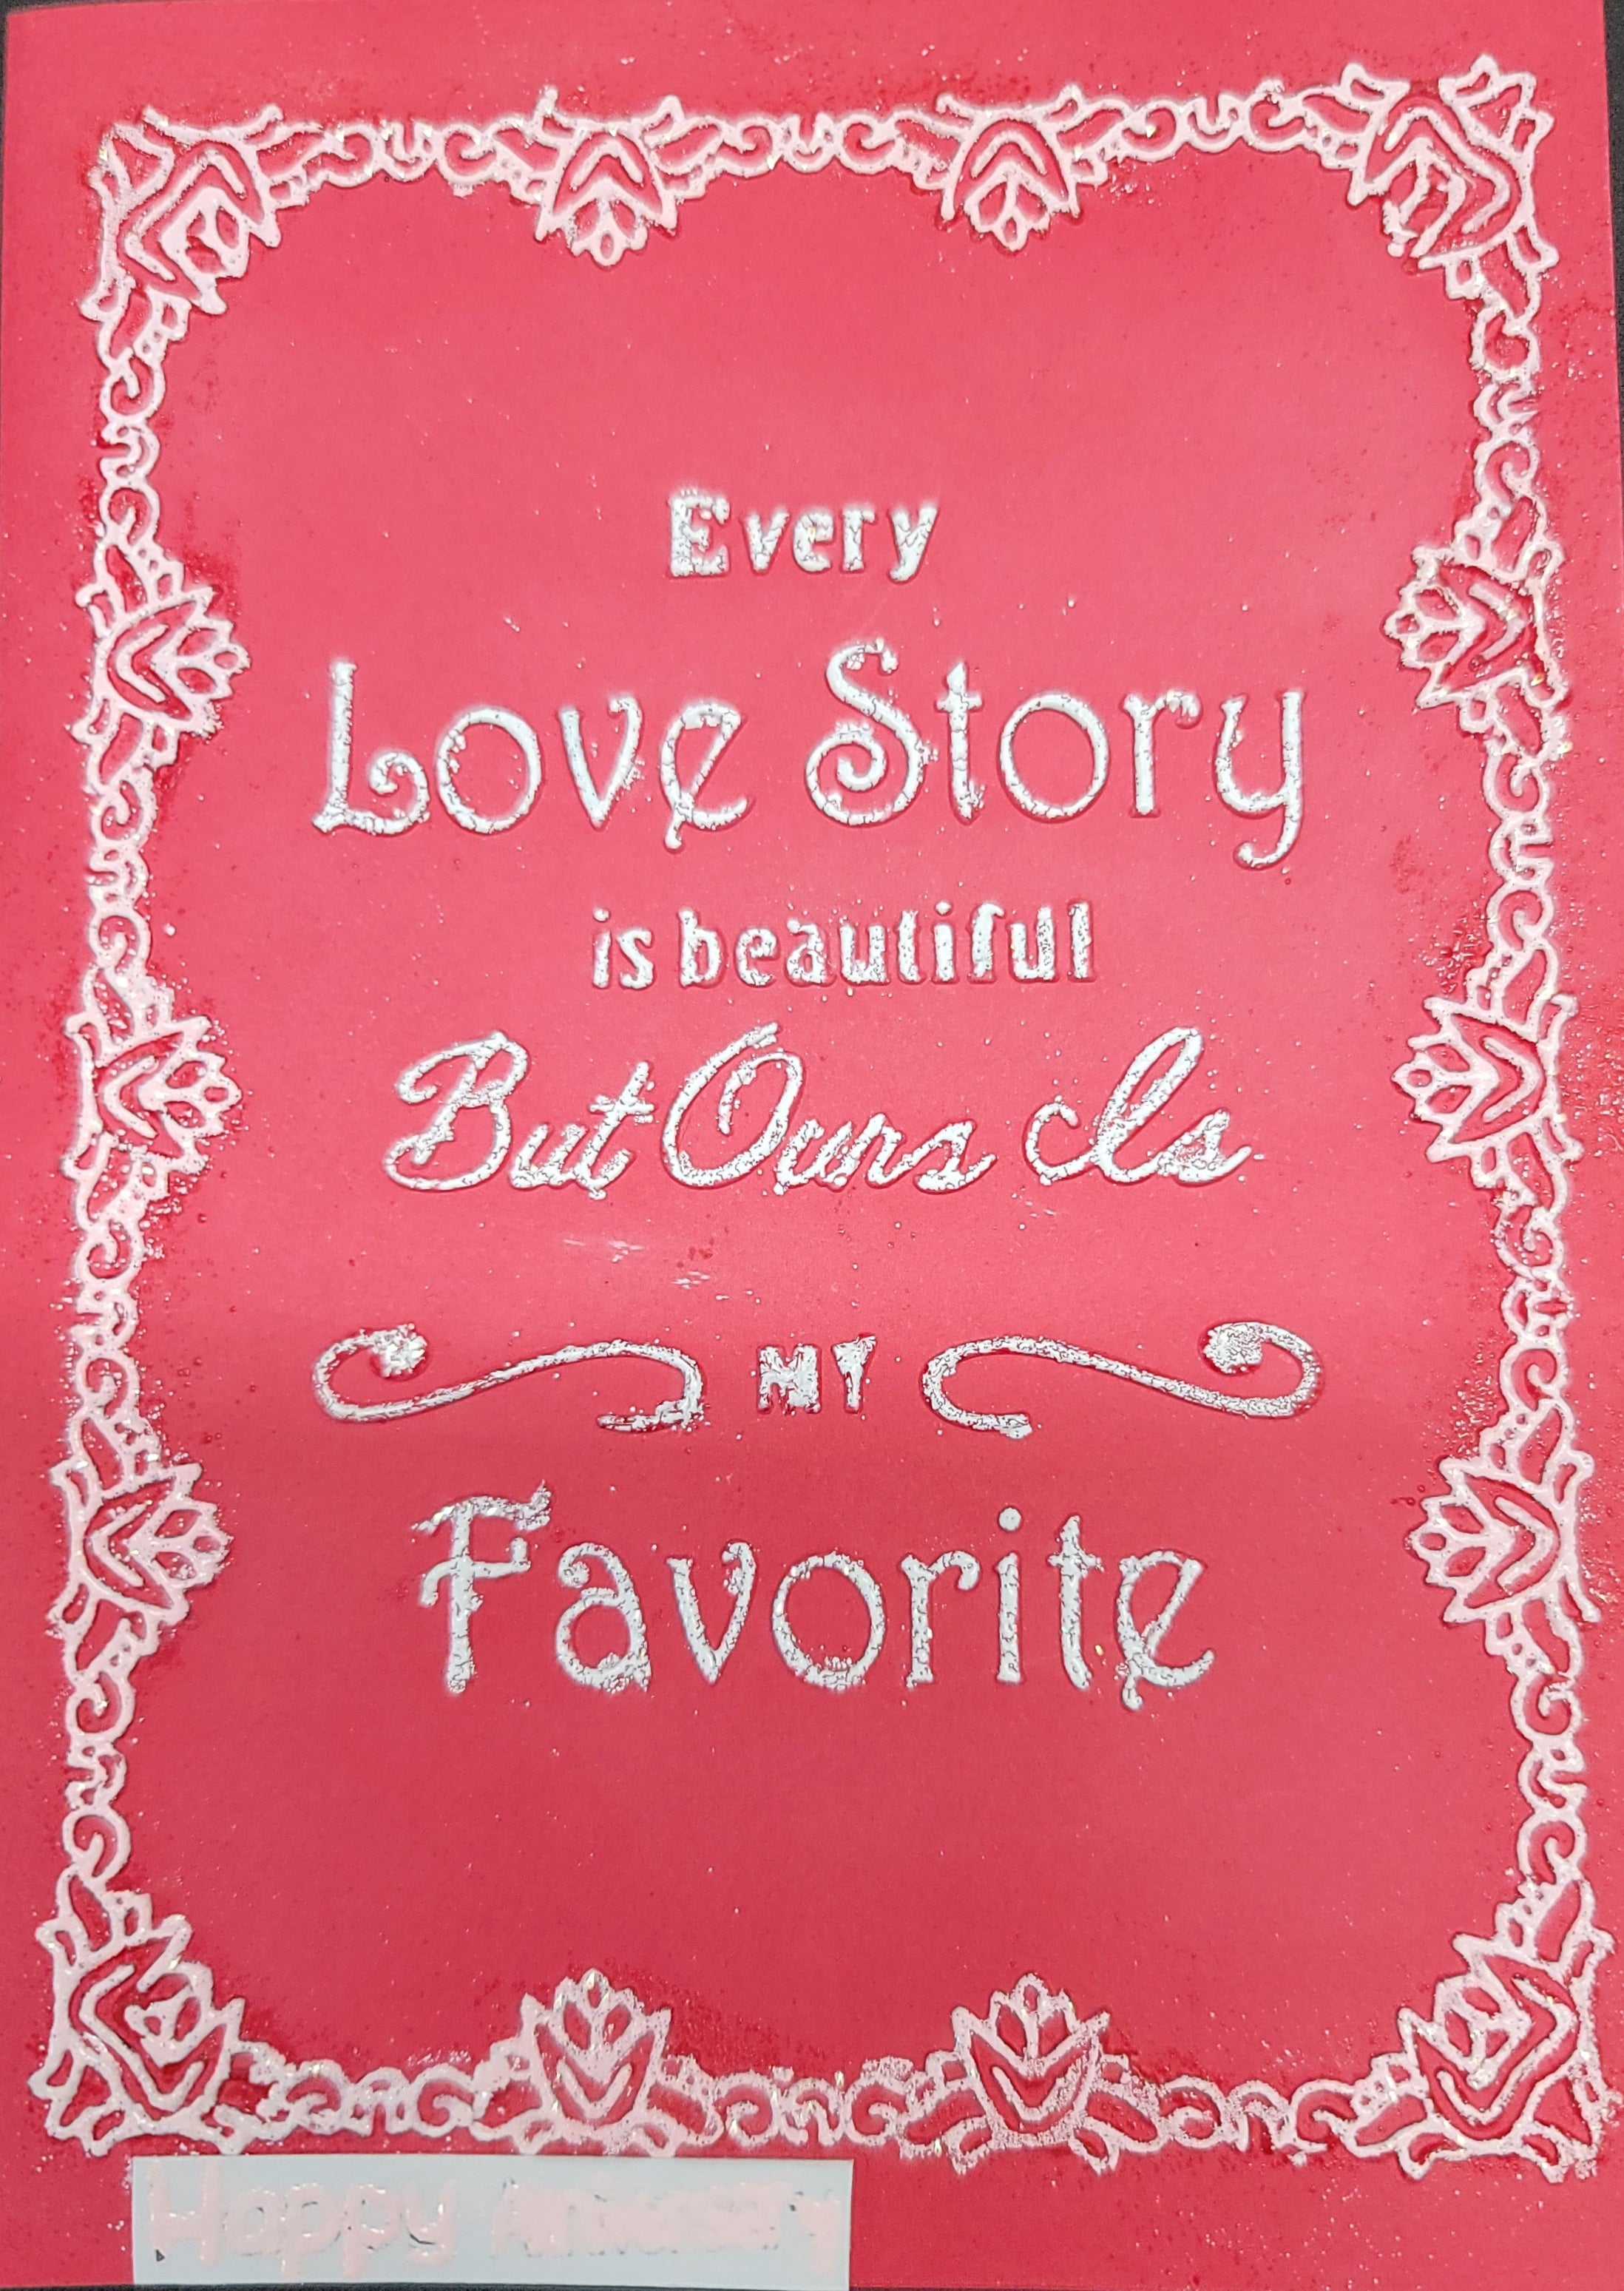 Every Love Story is Beautiful, But Ours Is Our Favorite Card